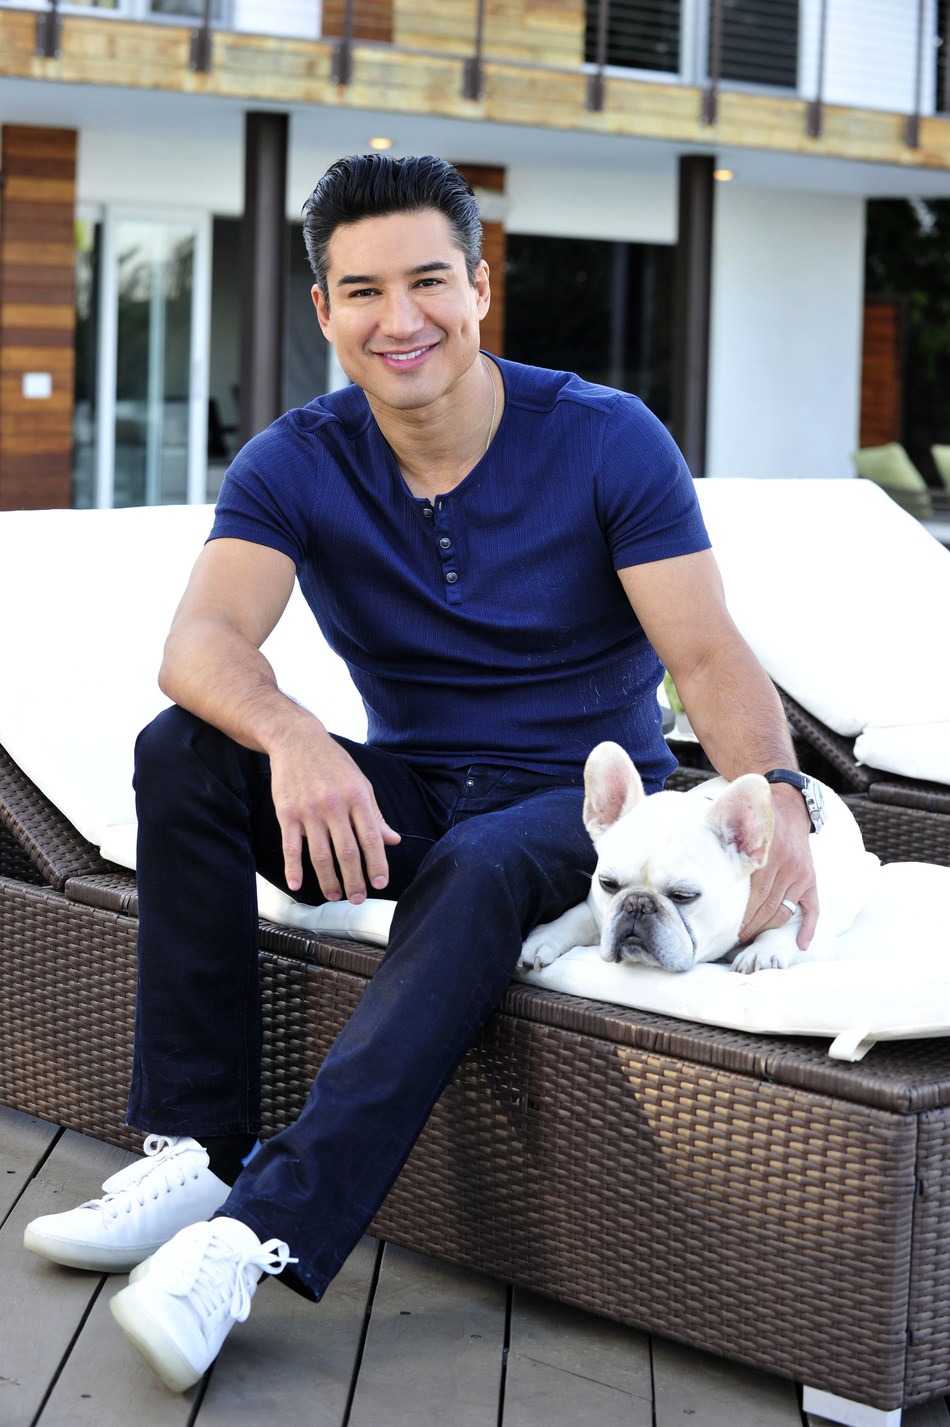 """EXTRA Host Mario Lopez and his French Bulldog """"Julio Cesar Chavez Lopez"""" are representing the Non-Sporting Group and #TeamFrenchie in this year's AKC National Championship Dog Show Presented by Royal Canin, airing on Animal Planet on Monday, January 1, 2019 at 6 p.m. ET."""